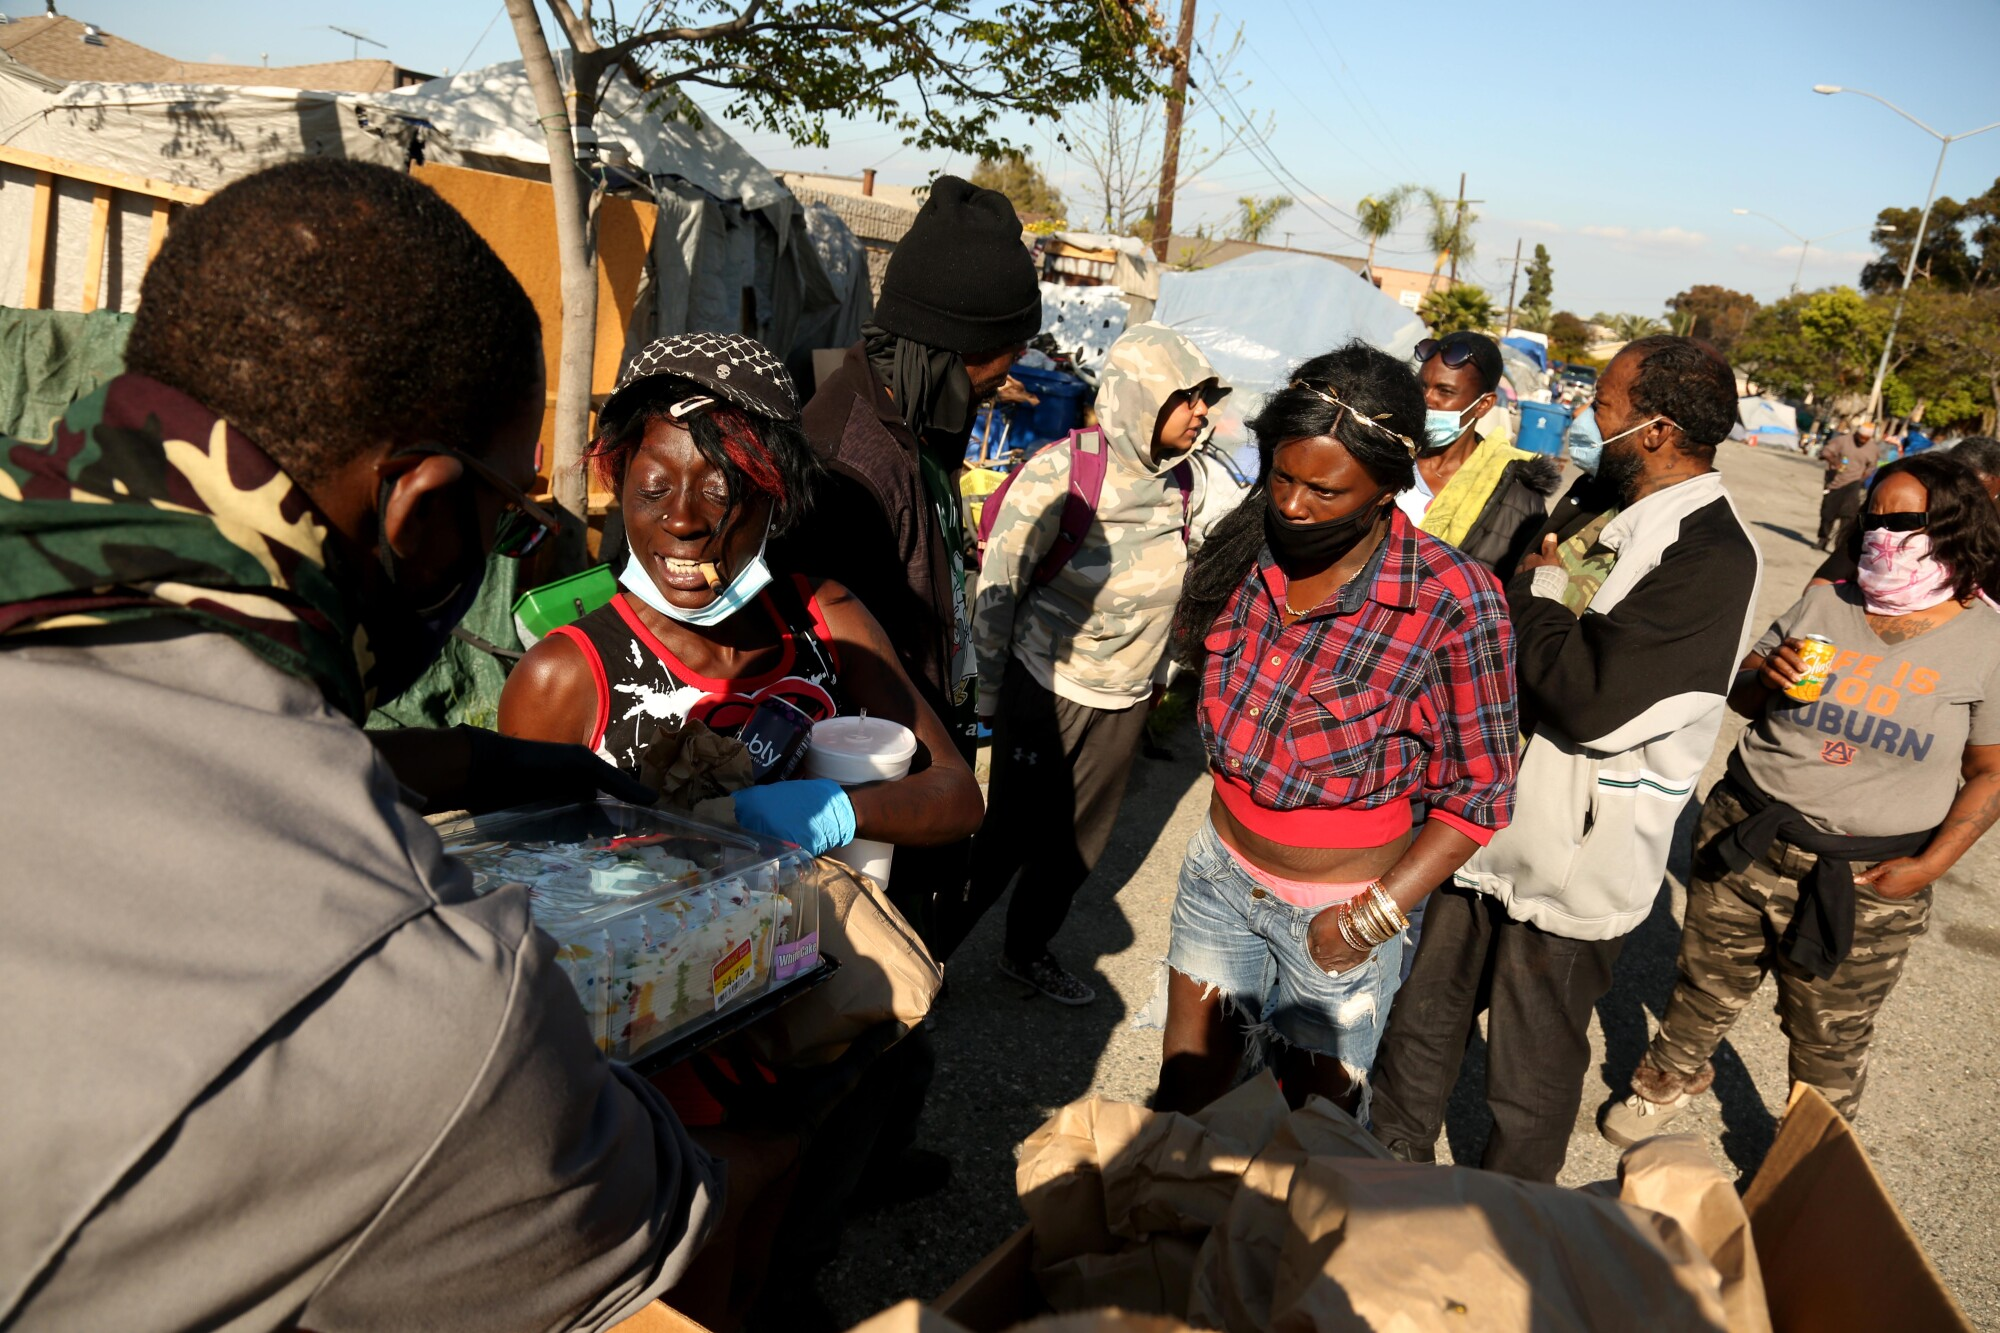 Gernay Quinnie Jr. meets with people living in a parking lot in South Los Angeles.